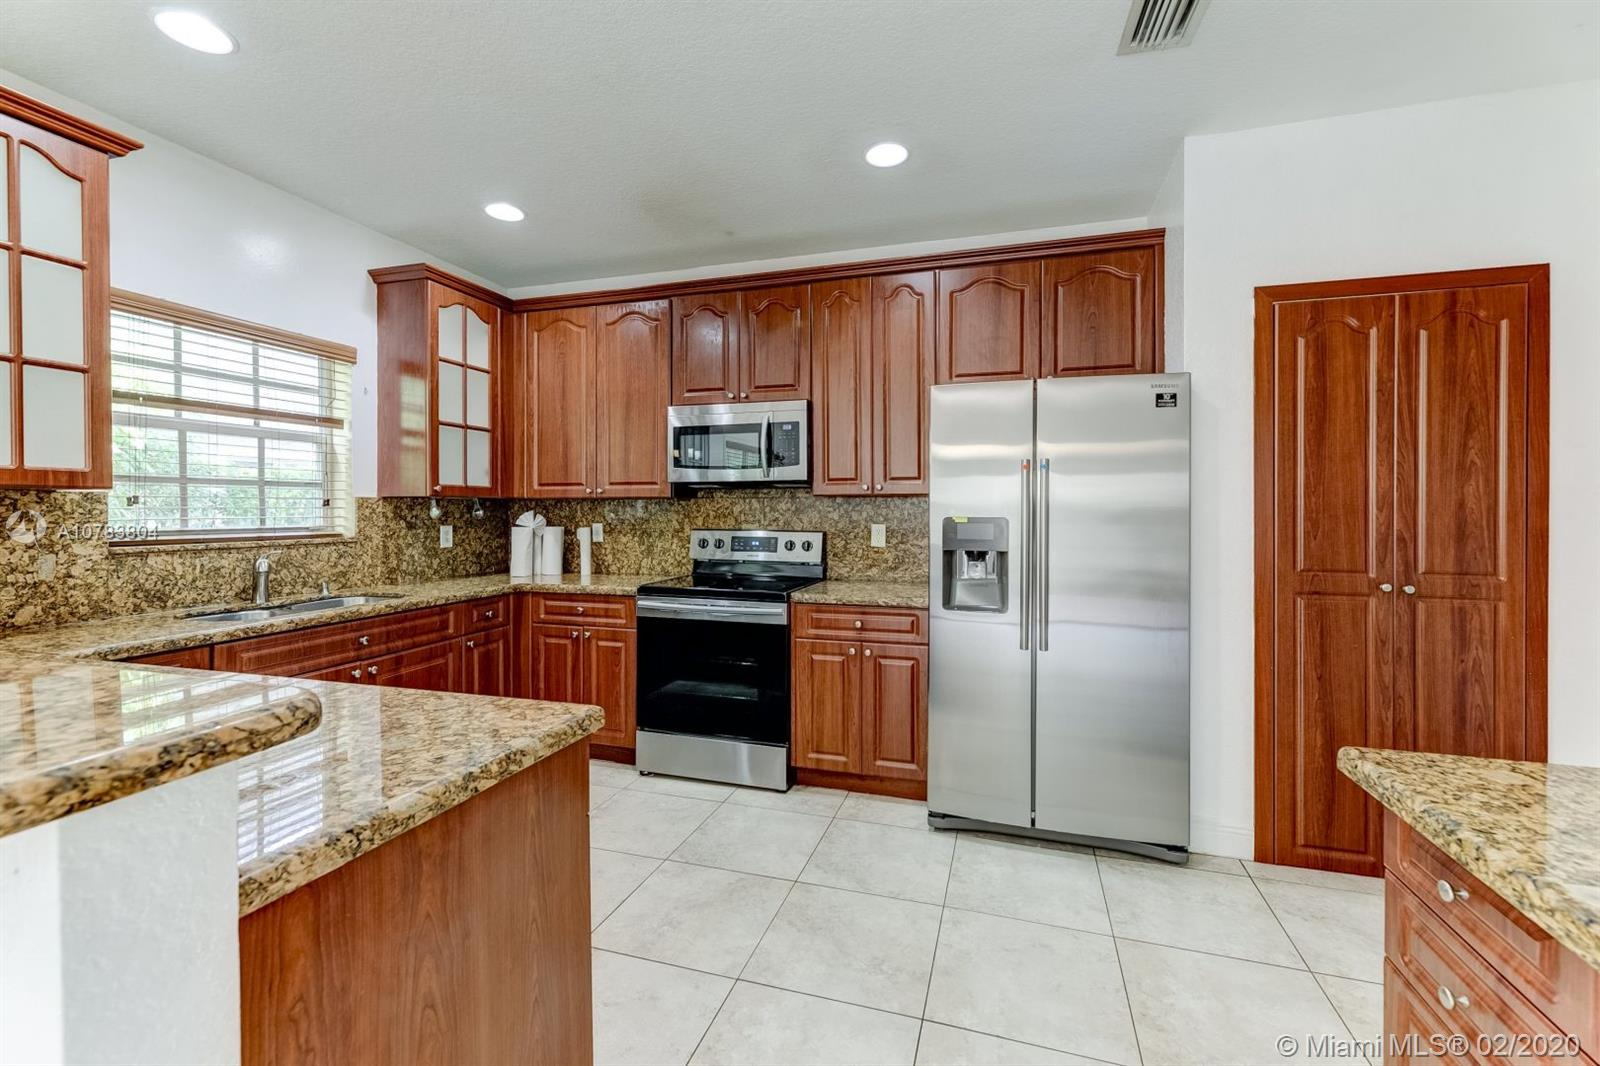 WOW!!! JUST REDUCED -- Beautiful gated community,  fully renovated 2 story 3 bedroom and 3 full bathrooms, 2 car garage home and with high ceilings throughout including the garage located in Vizcaya . One bedroom/one bath on the first floor. Two master bedrooms upstairs. Inviting kitchen with Granite counter tops,  new stainless steal appliances, pantry, plus a bonus desk. New Washer and Dryer on the 2nd floor. New A/C installed. Spacious layout with many windows offering natural light. New wood flooring in all bedrooms . HOA fee includes club house, lawn care, community pool, tennis court, basketball court, playground, and gym. Close to all major shopping centers and highways.  No HOA approval needed. A must see! Schedule you appointment now.